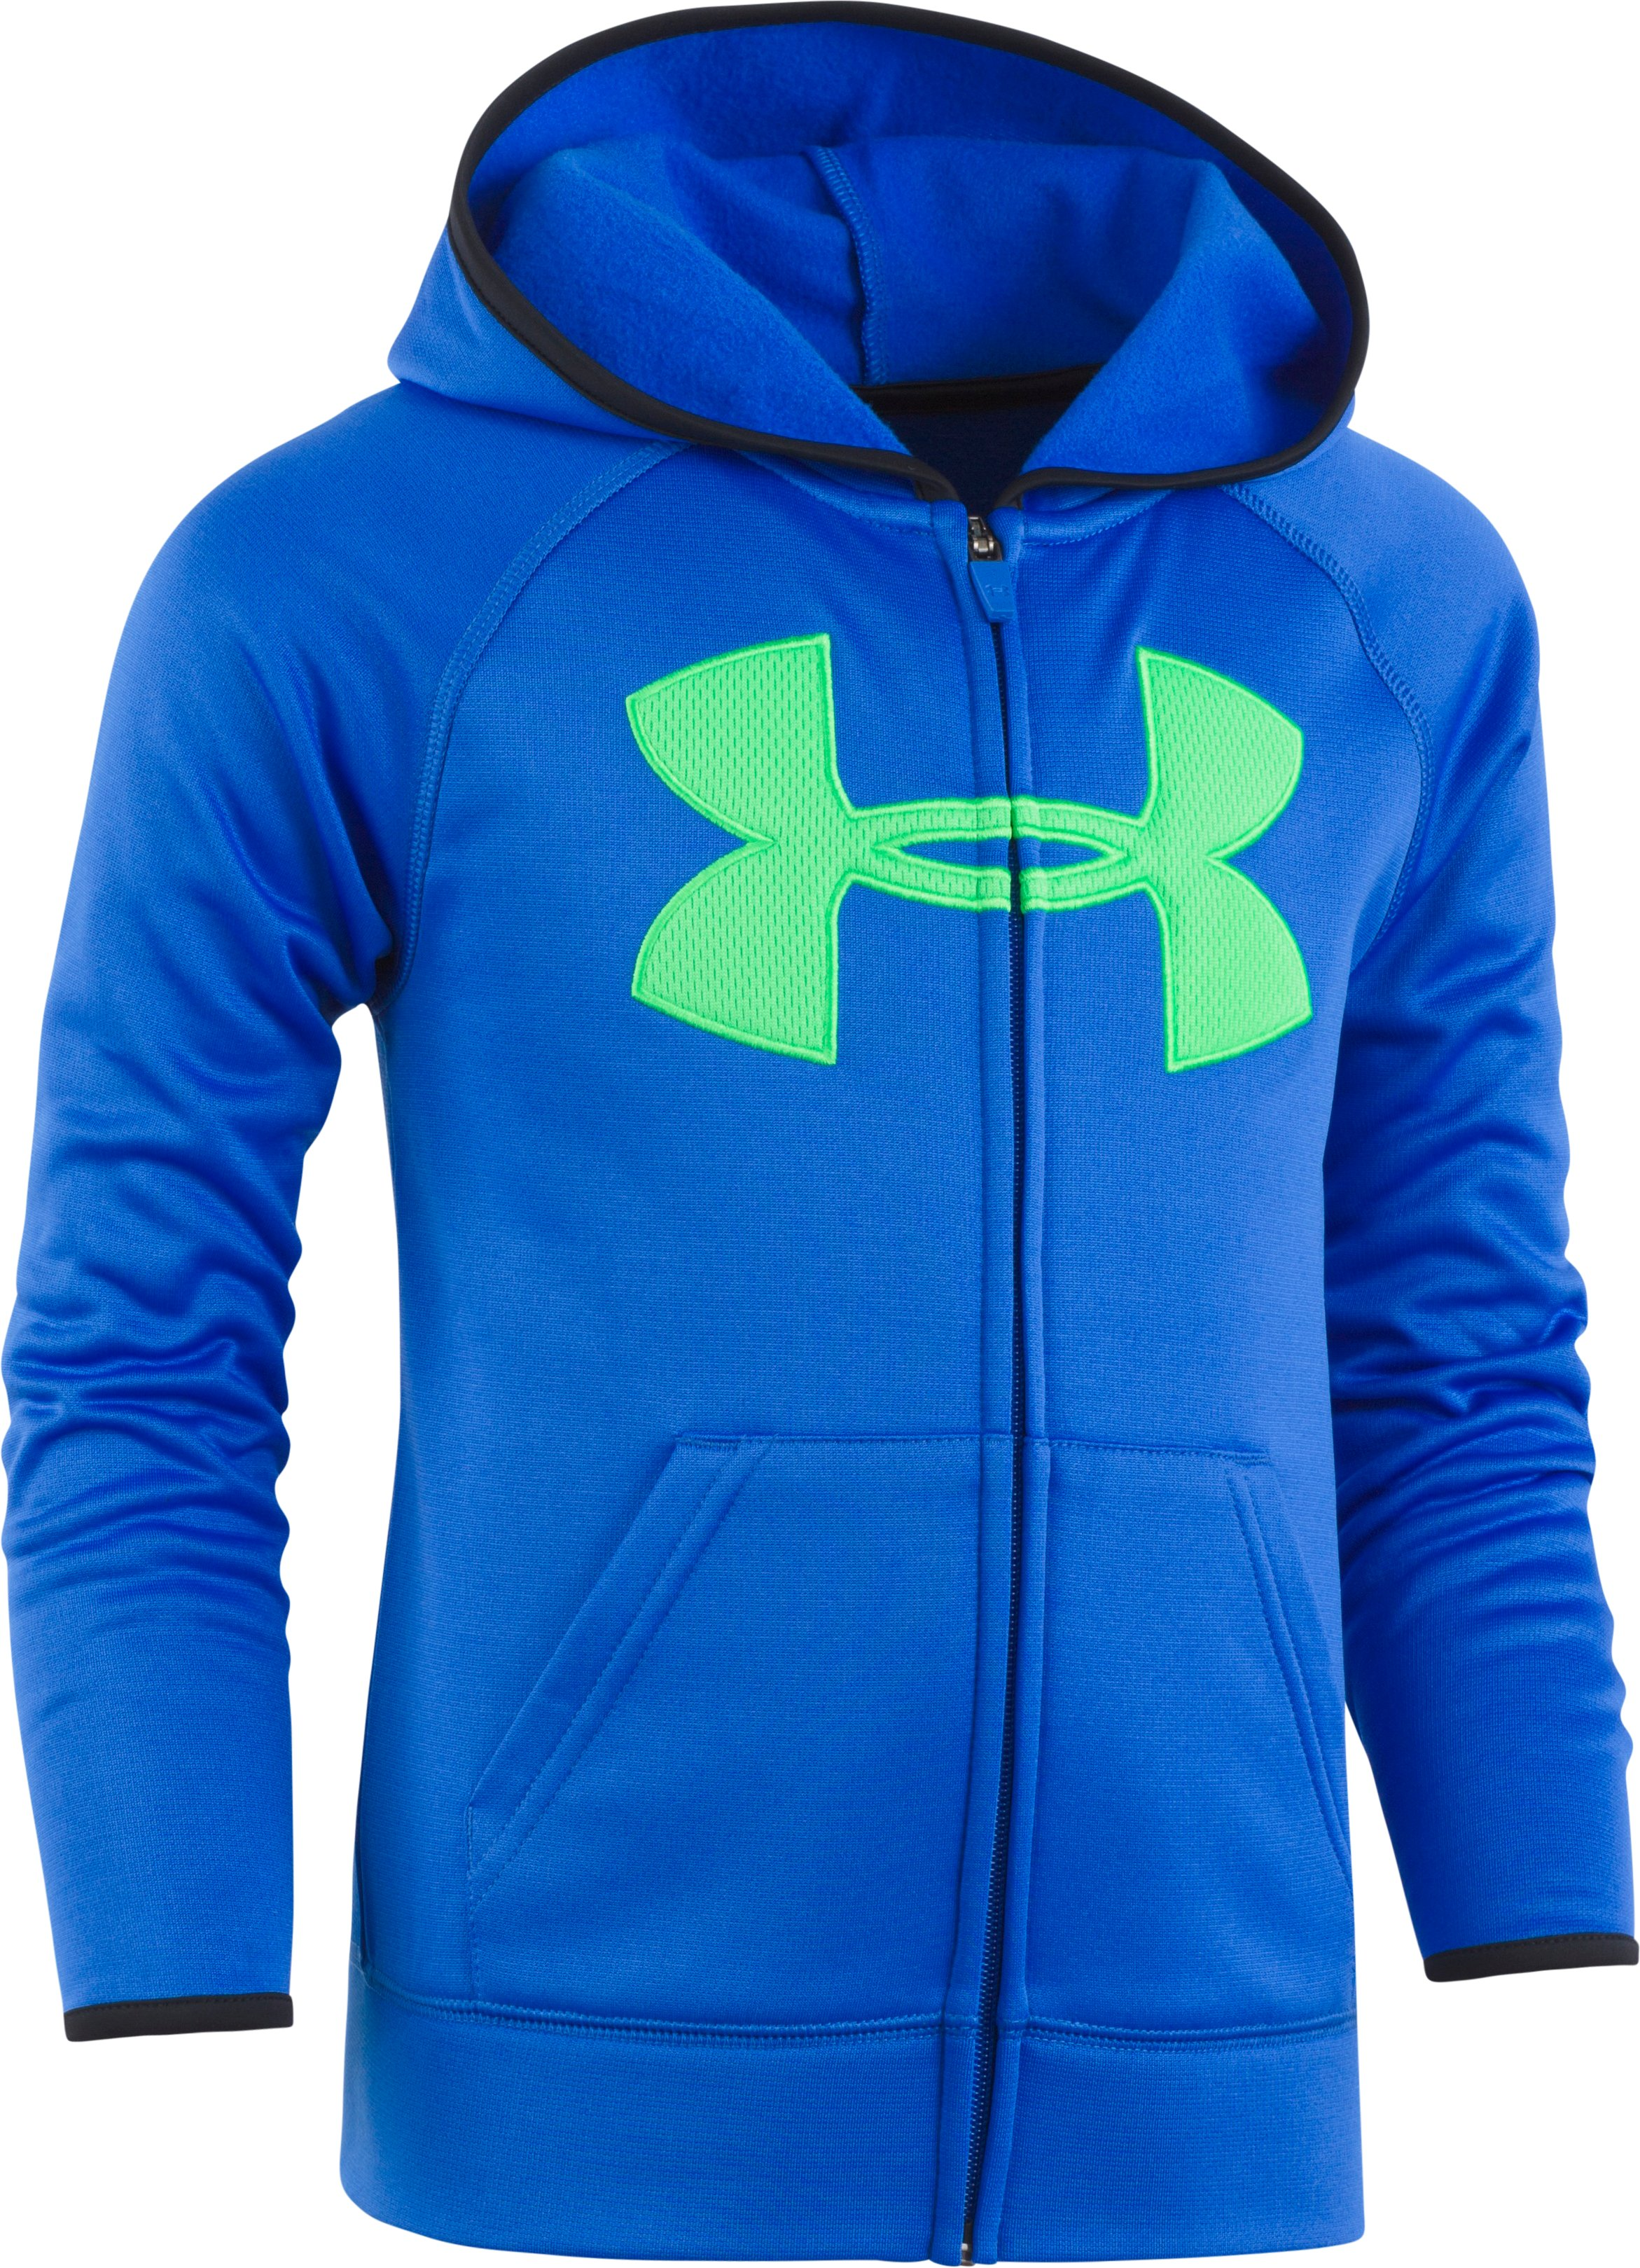 Boys' Toddler UA Big Logo Hoodie, ULTRA BLUE